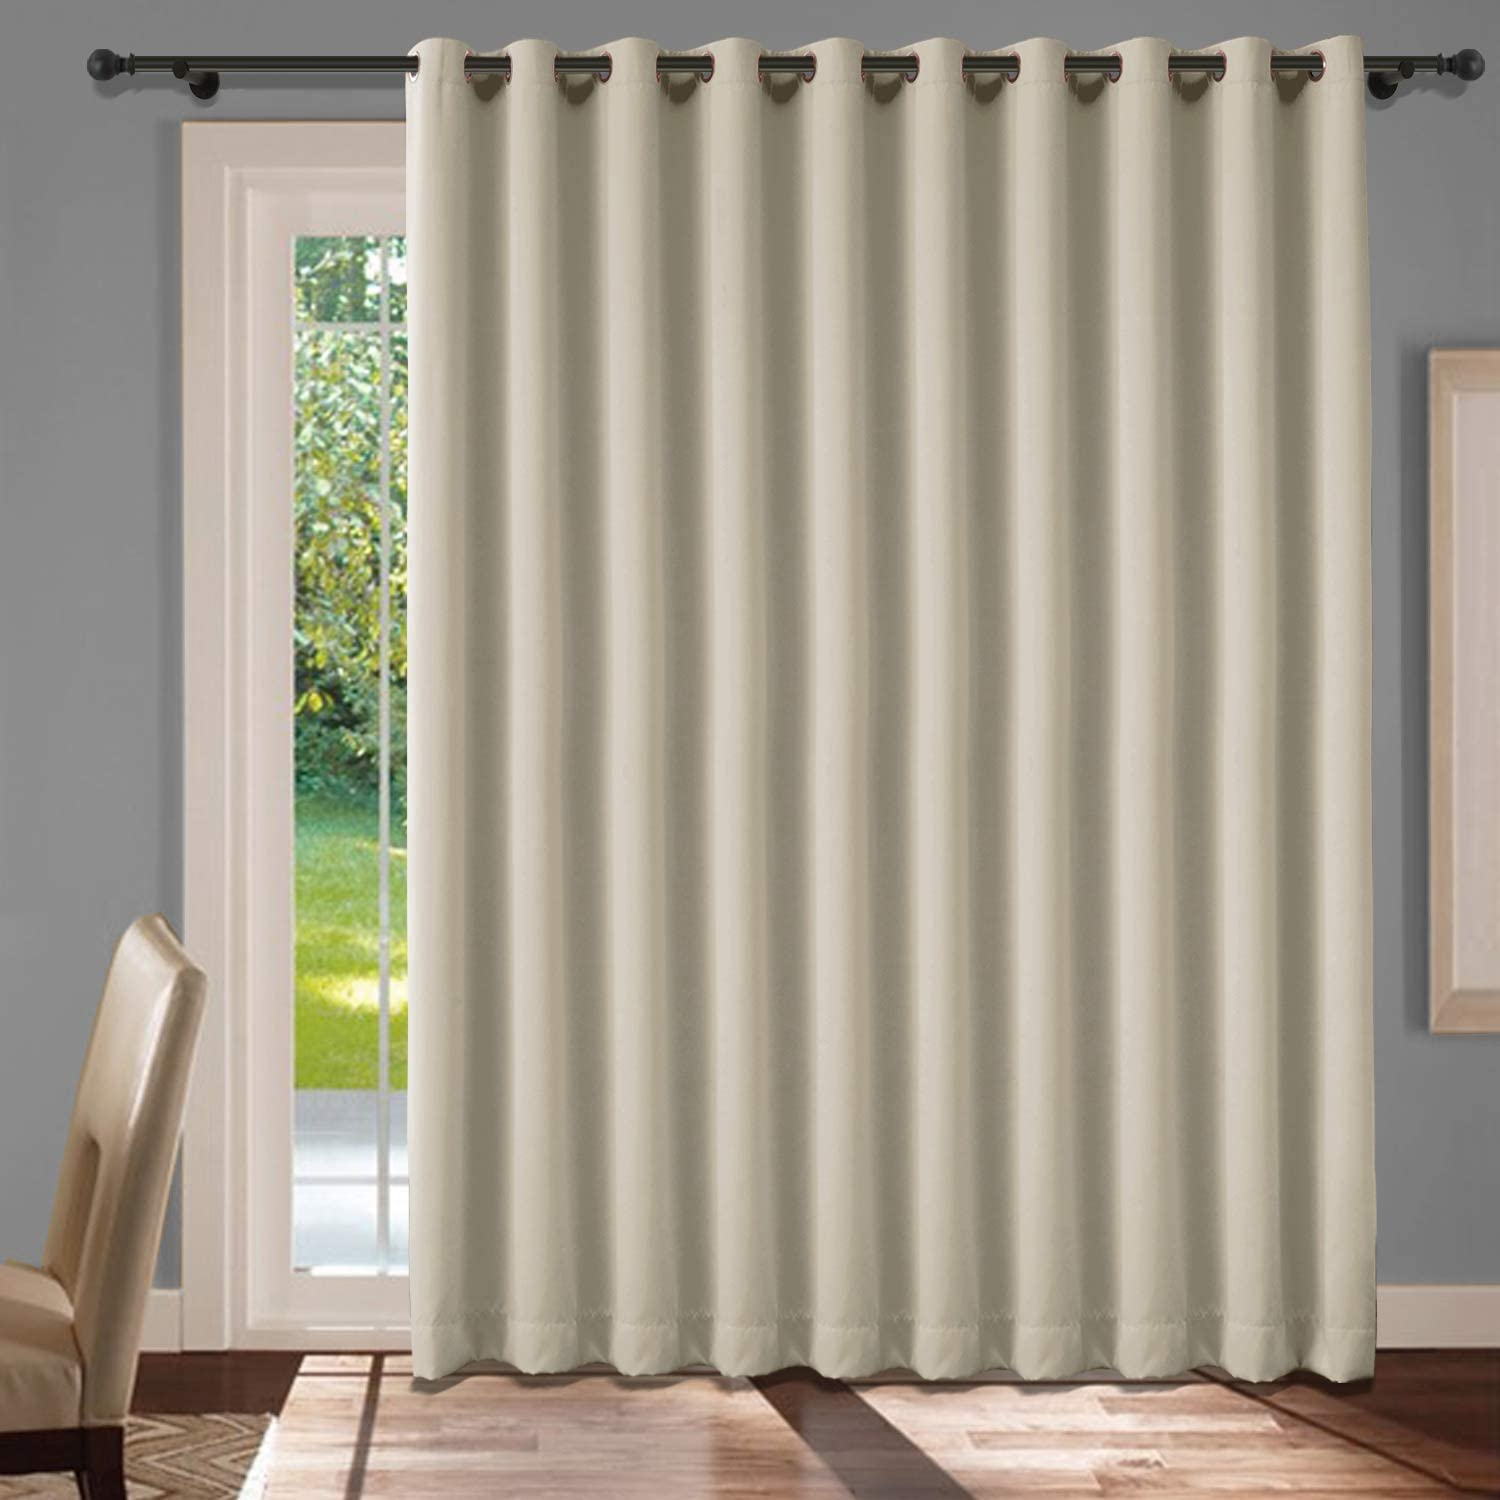 cololeaf Bedroom Blackout Curtains Panels - Window Treatment Thermal Insulated Solid Grommet Blackout for Living Room Bedroom Dining Room Family Room - Beige 52W x 84L Inch (1 Panel)